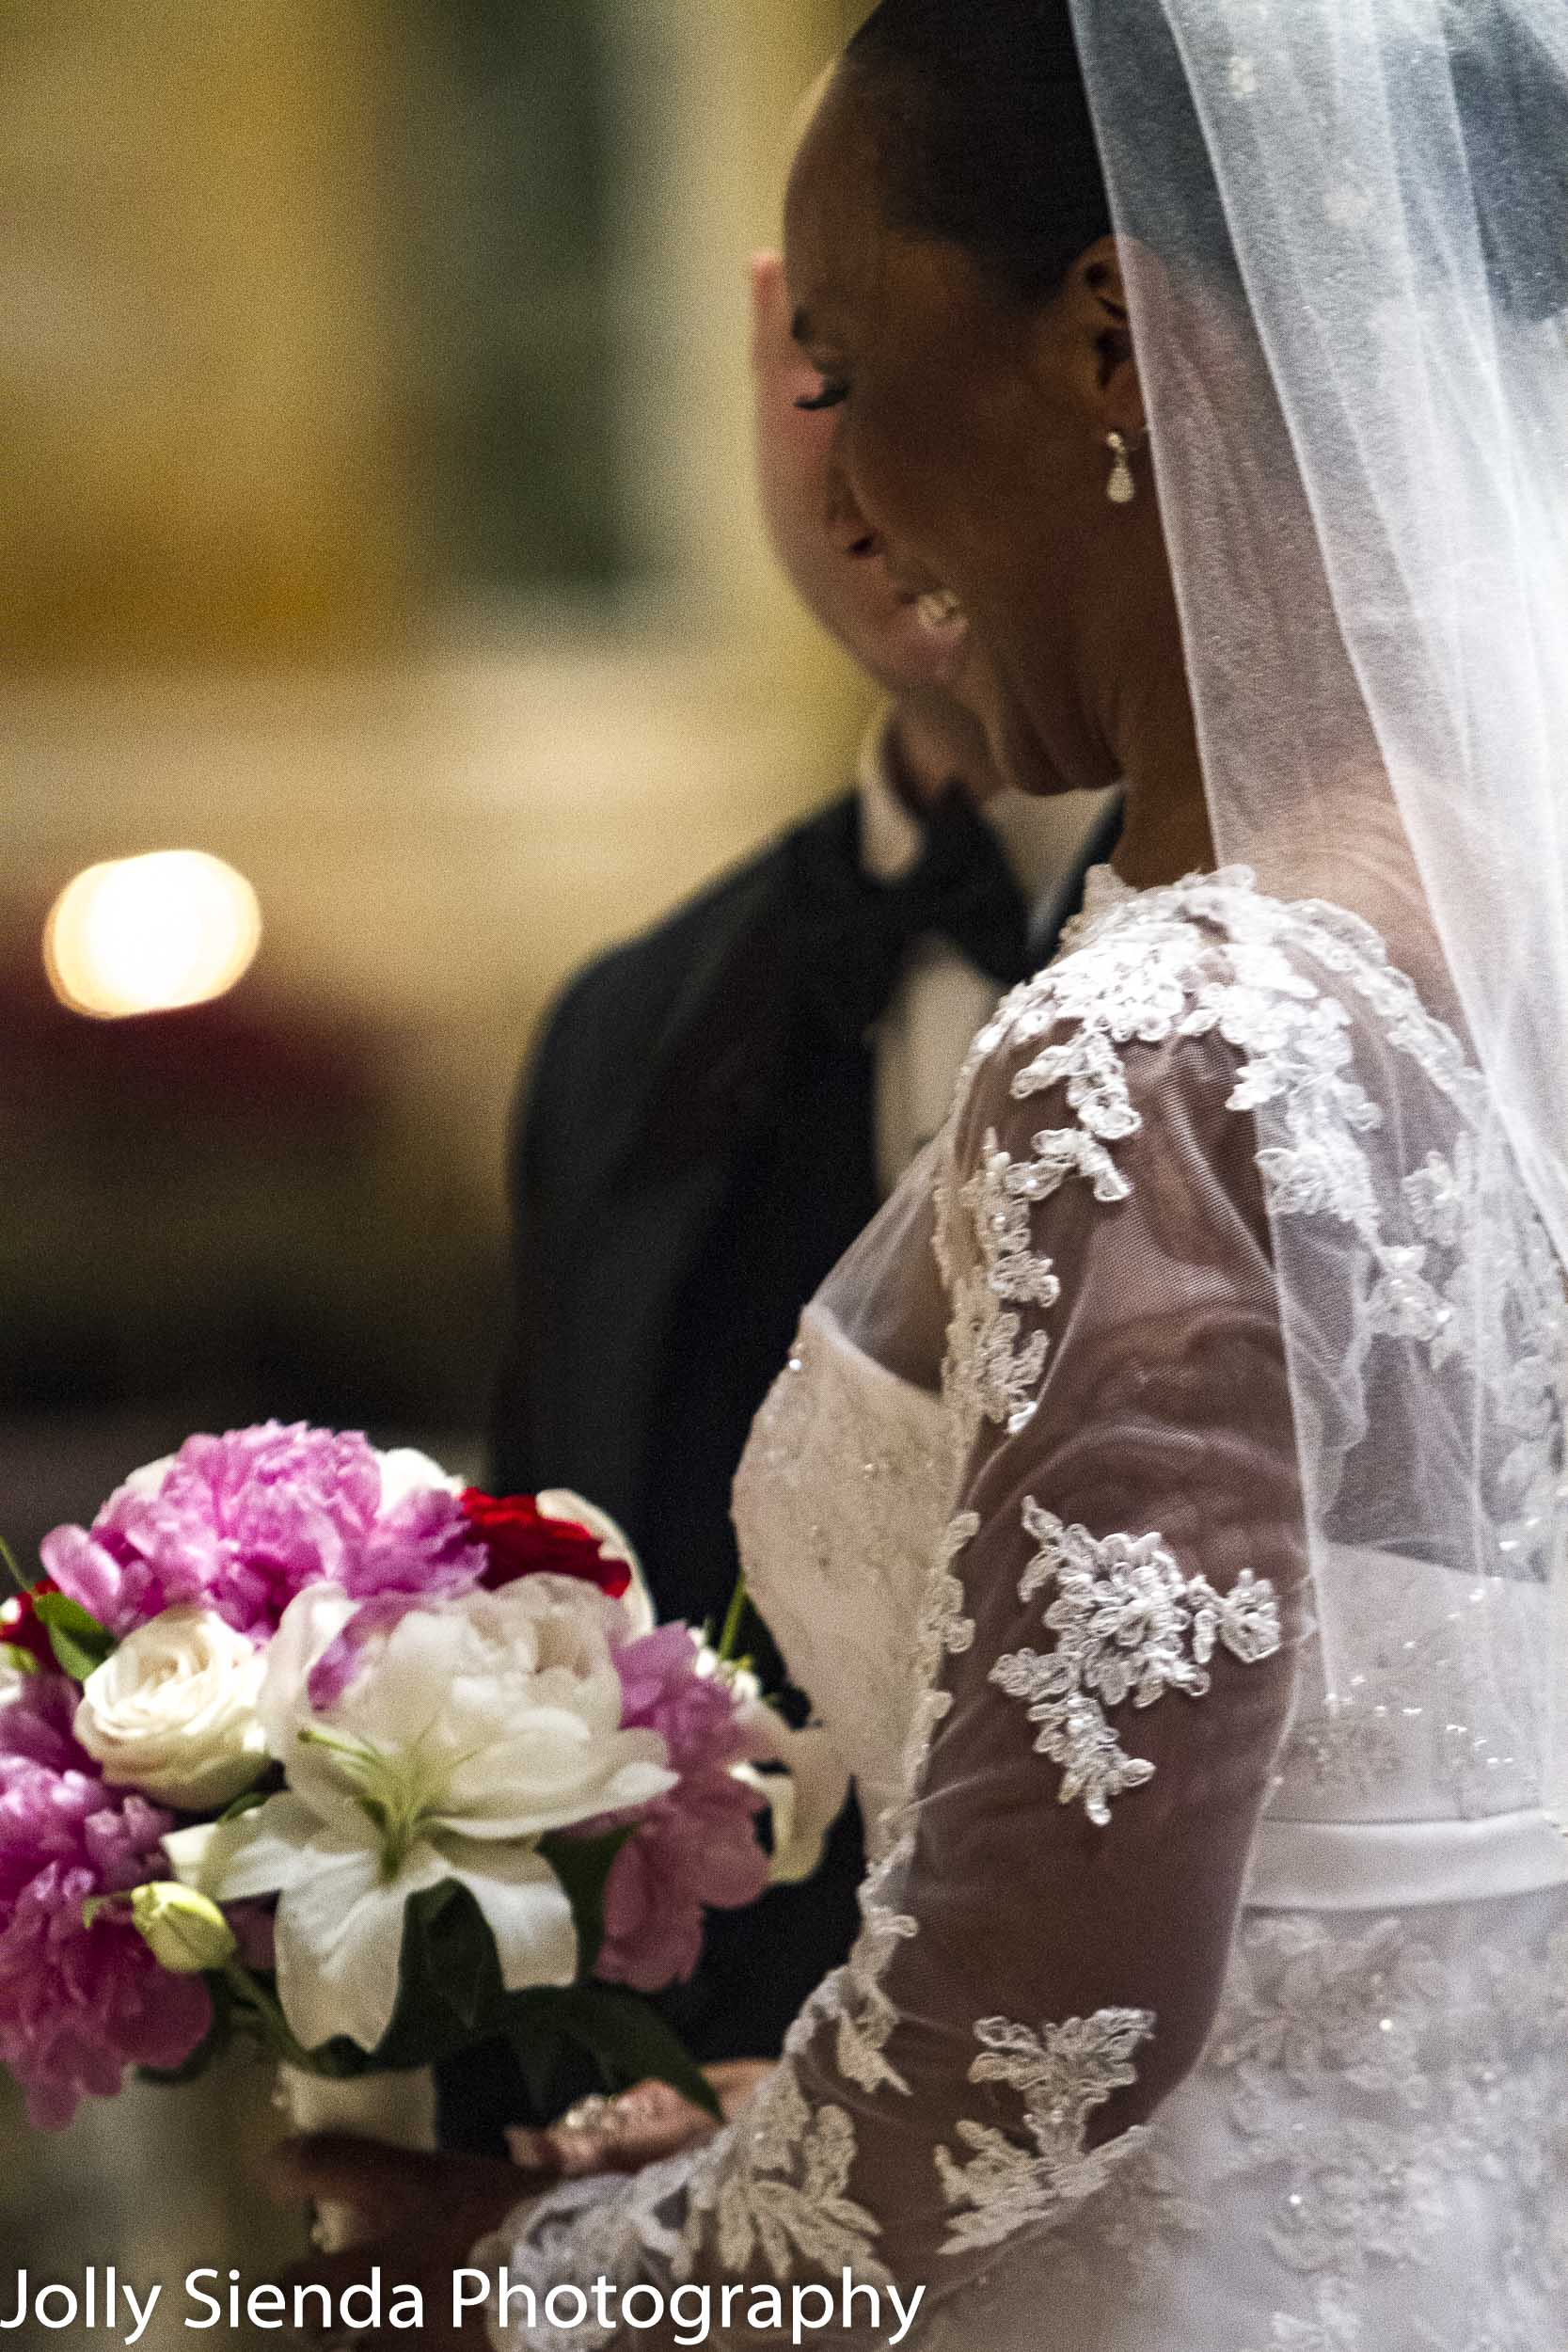 Glamourous bride with bouquet at the alter